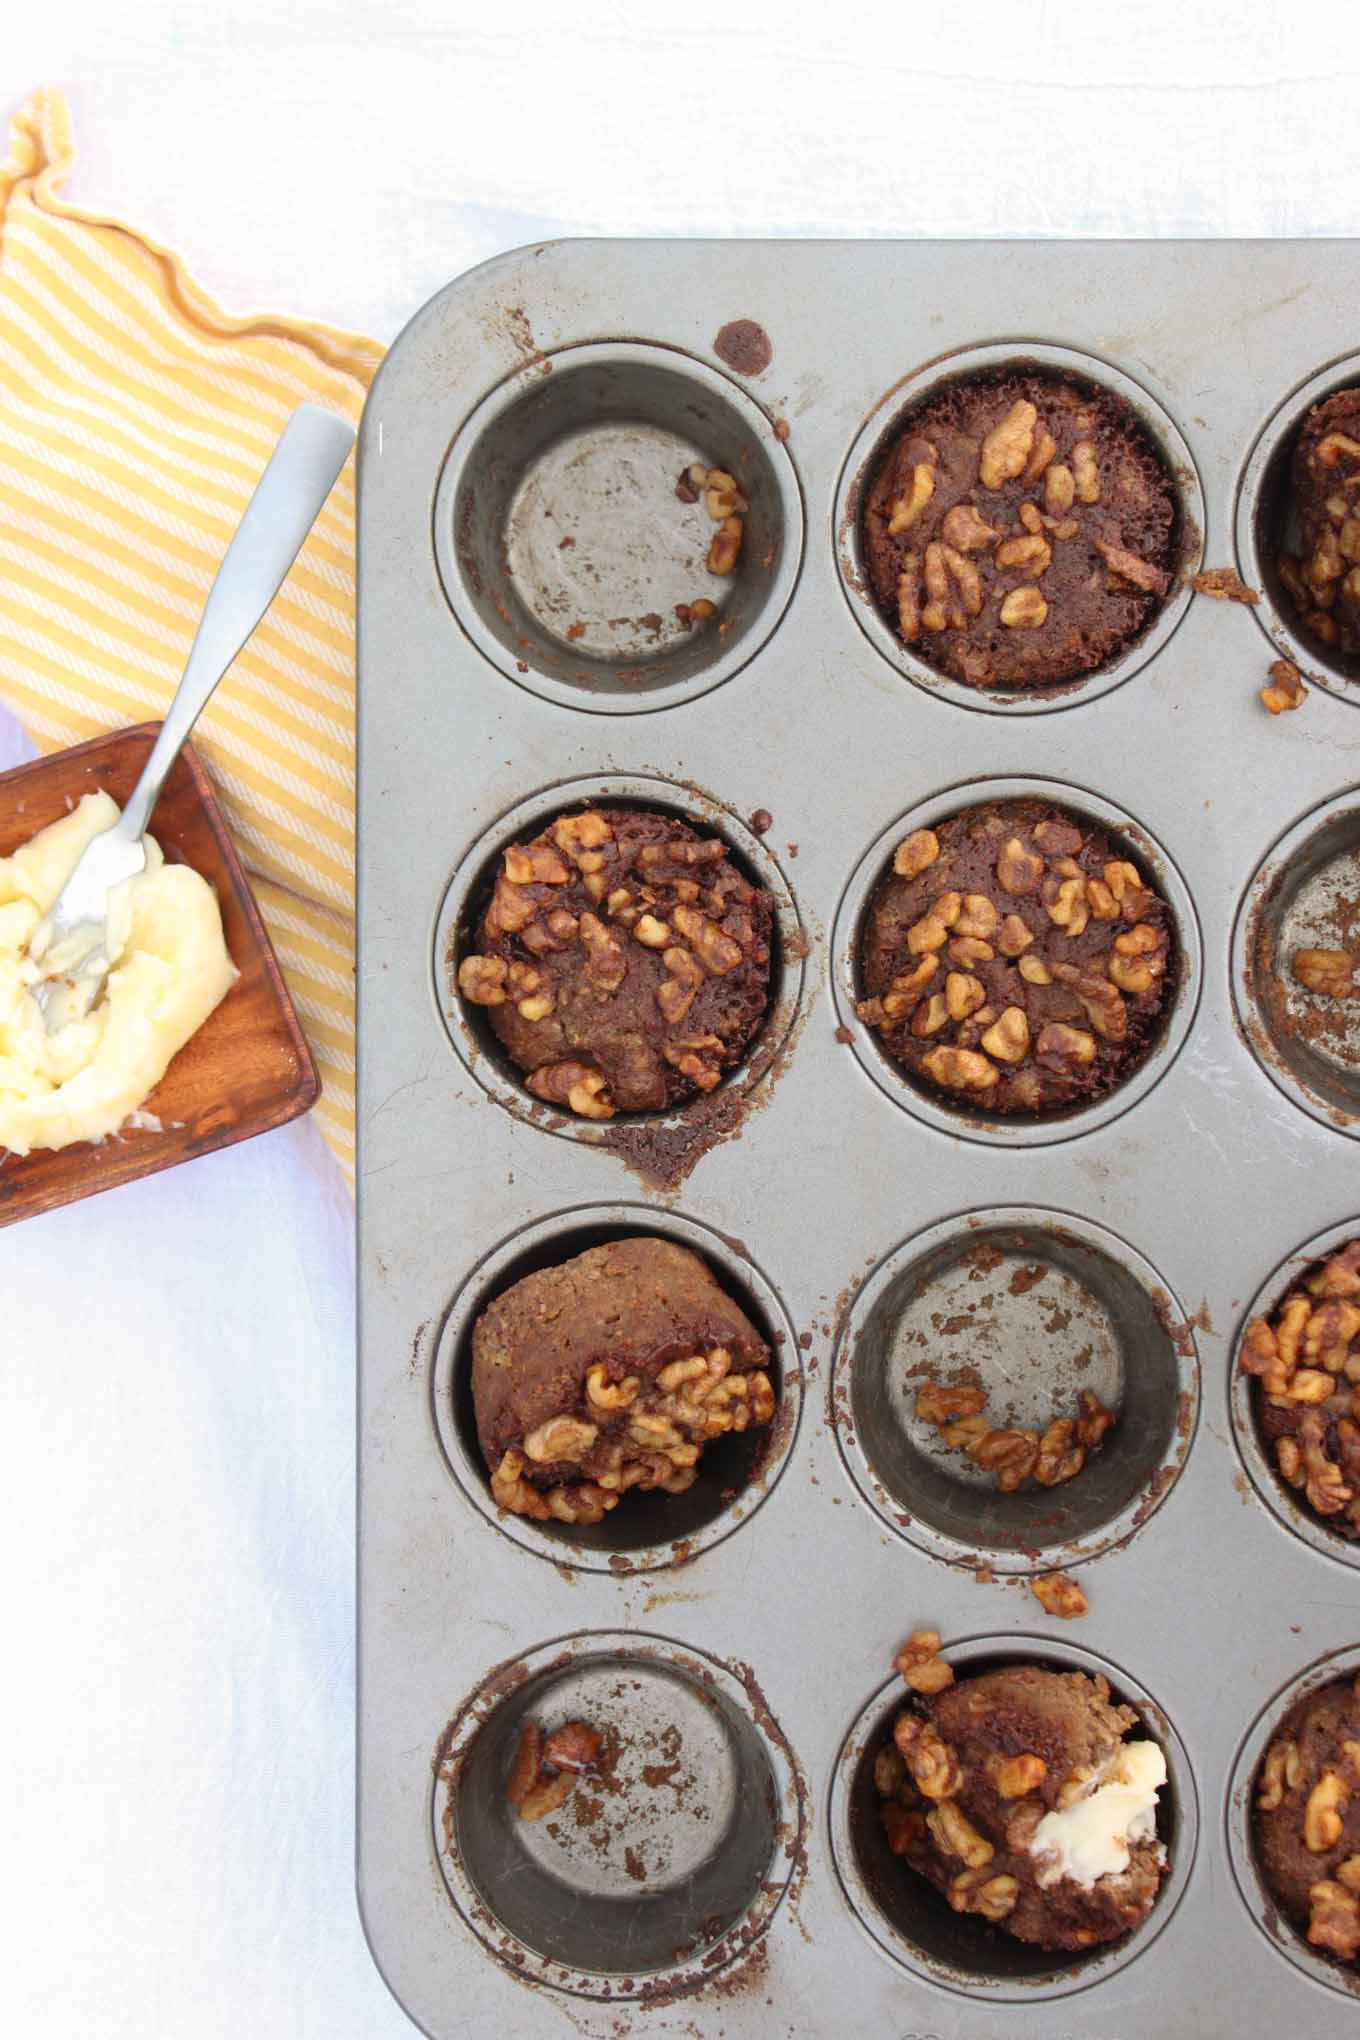 Spiced Zucchini Muffins with Streusel Topping | simplerootswellness.com